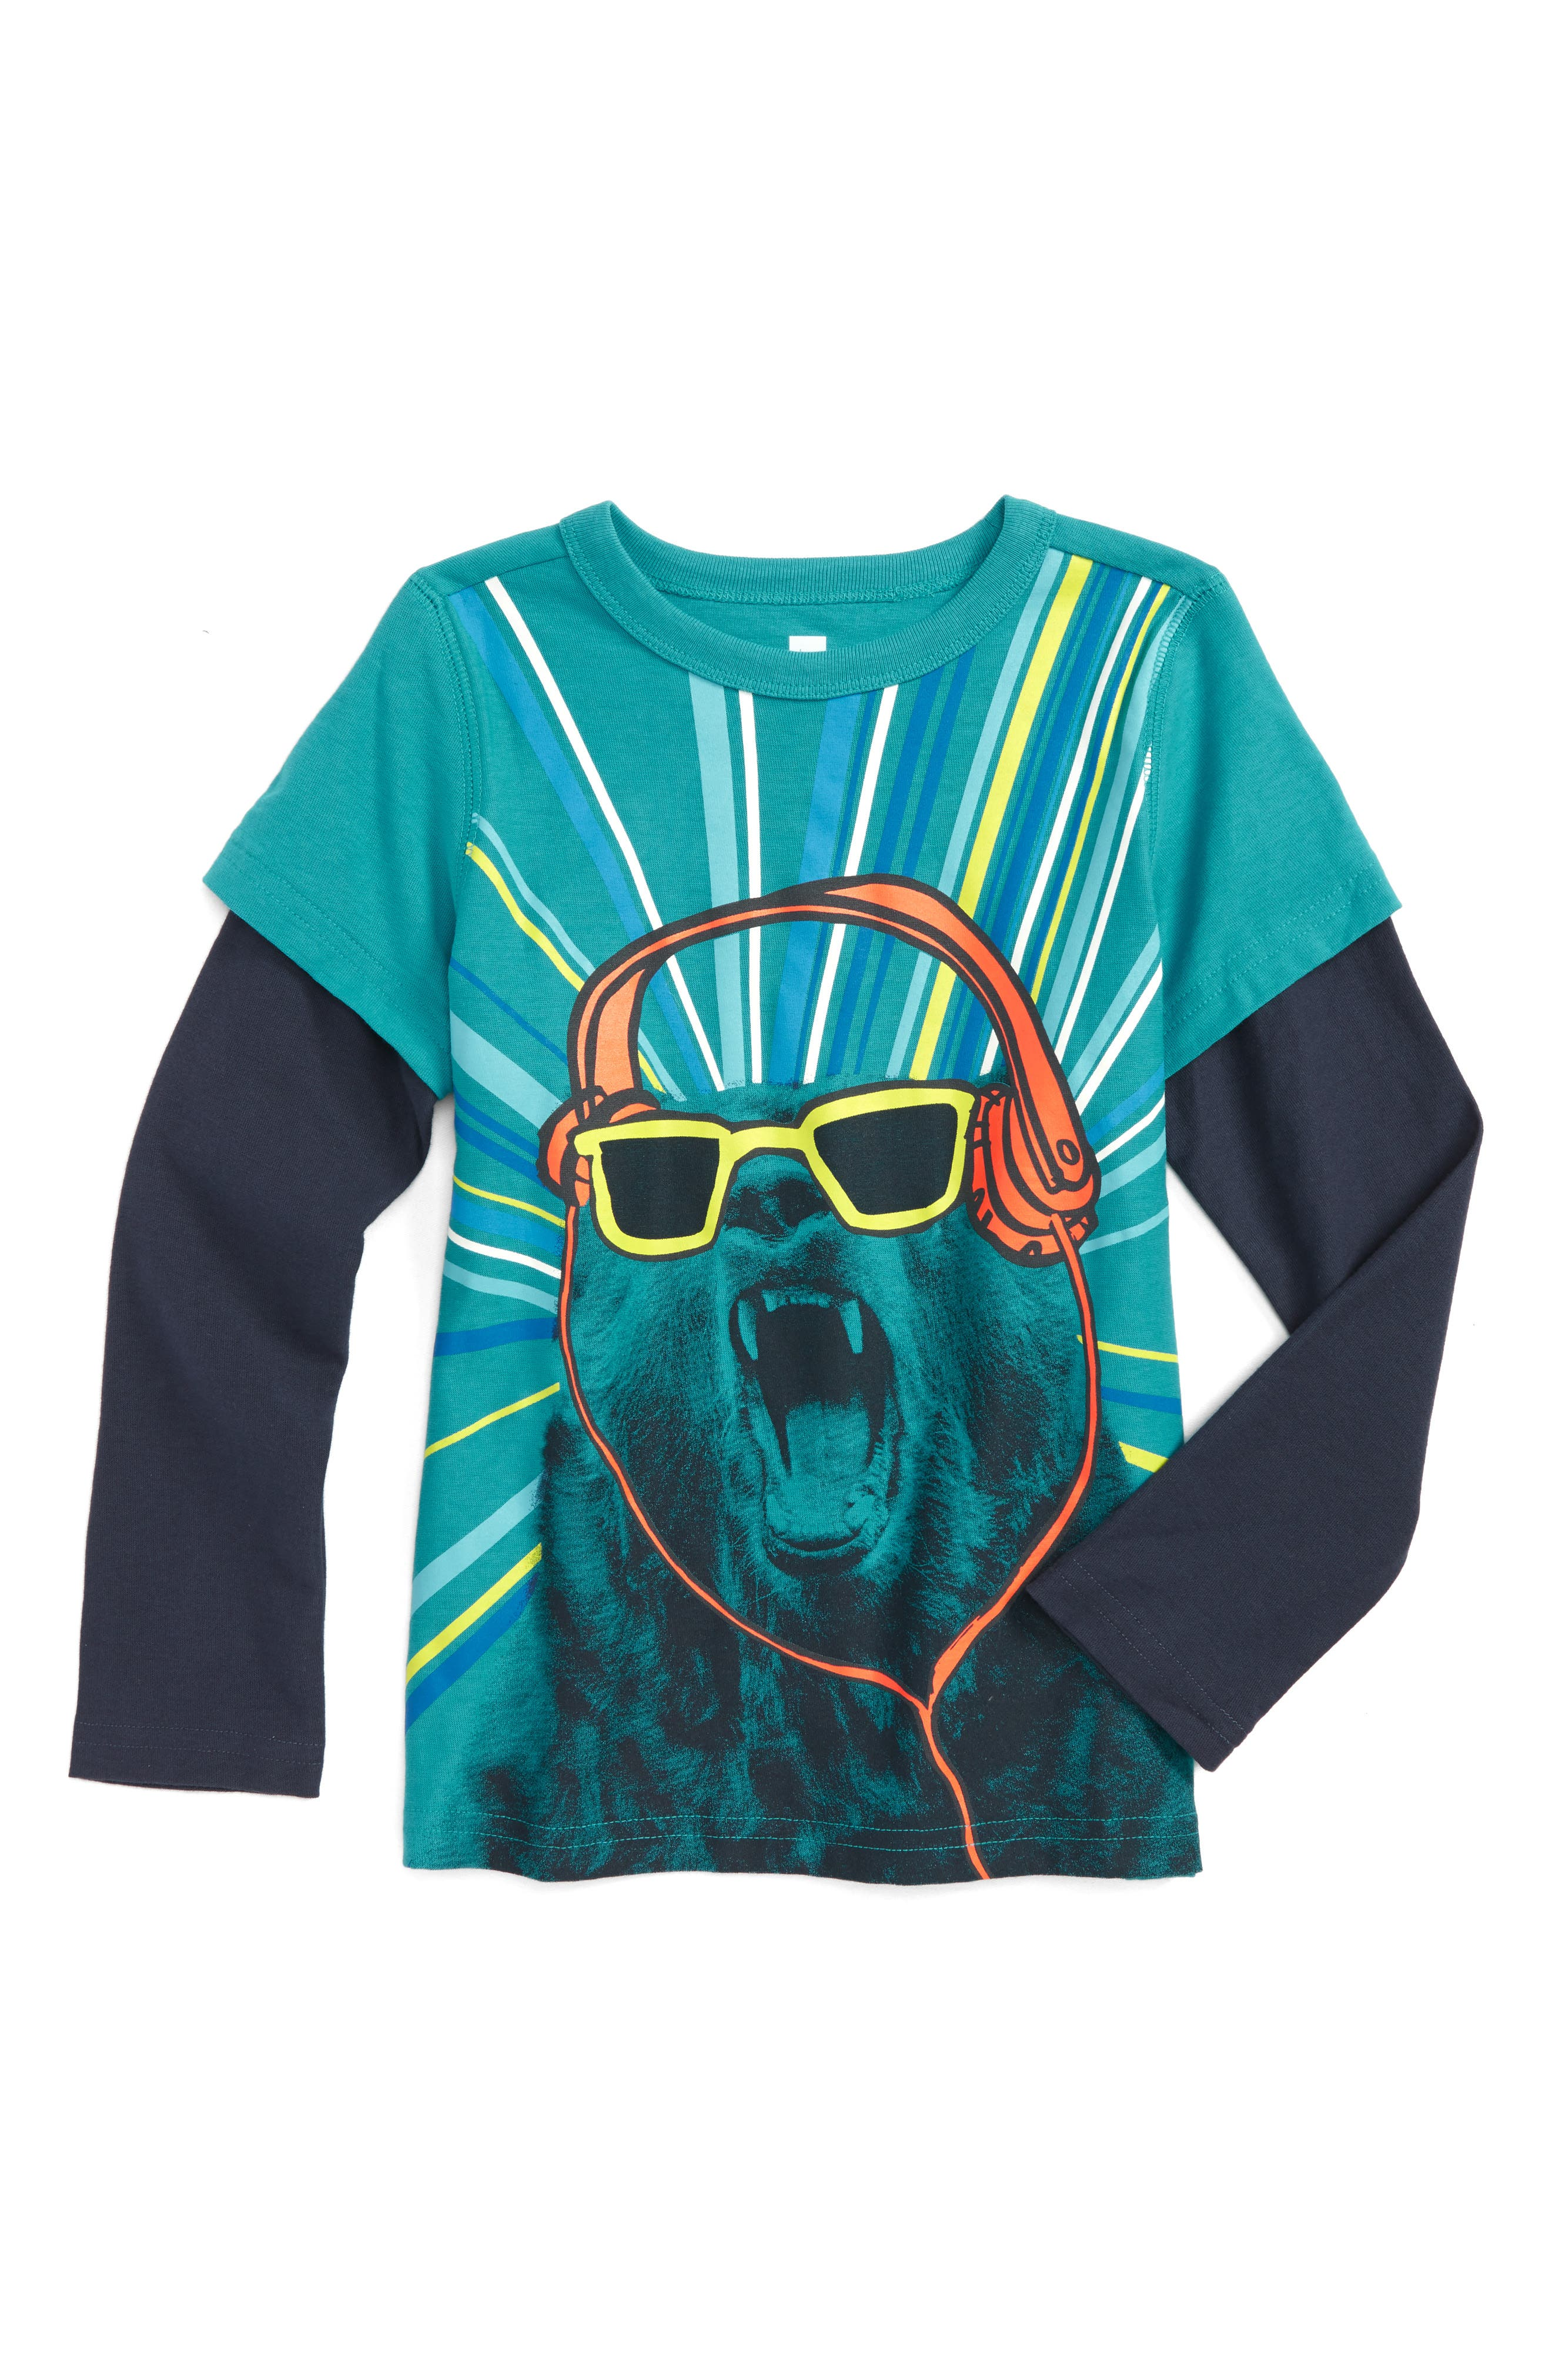 Bear With Me Graphic T-Shirt,                             Main thumbnail 1, color,                             450